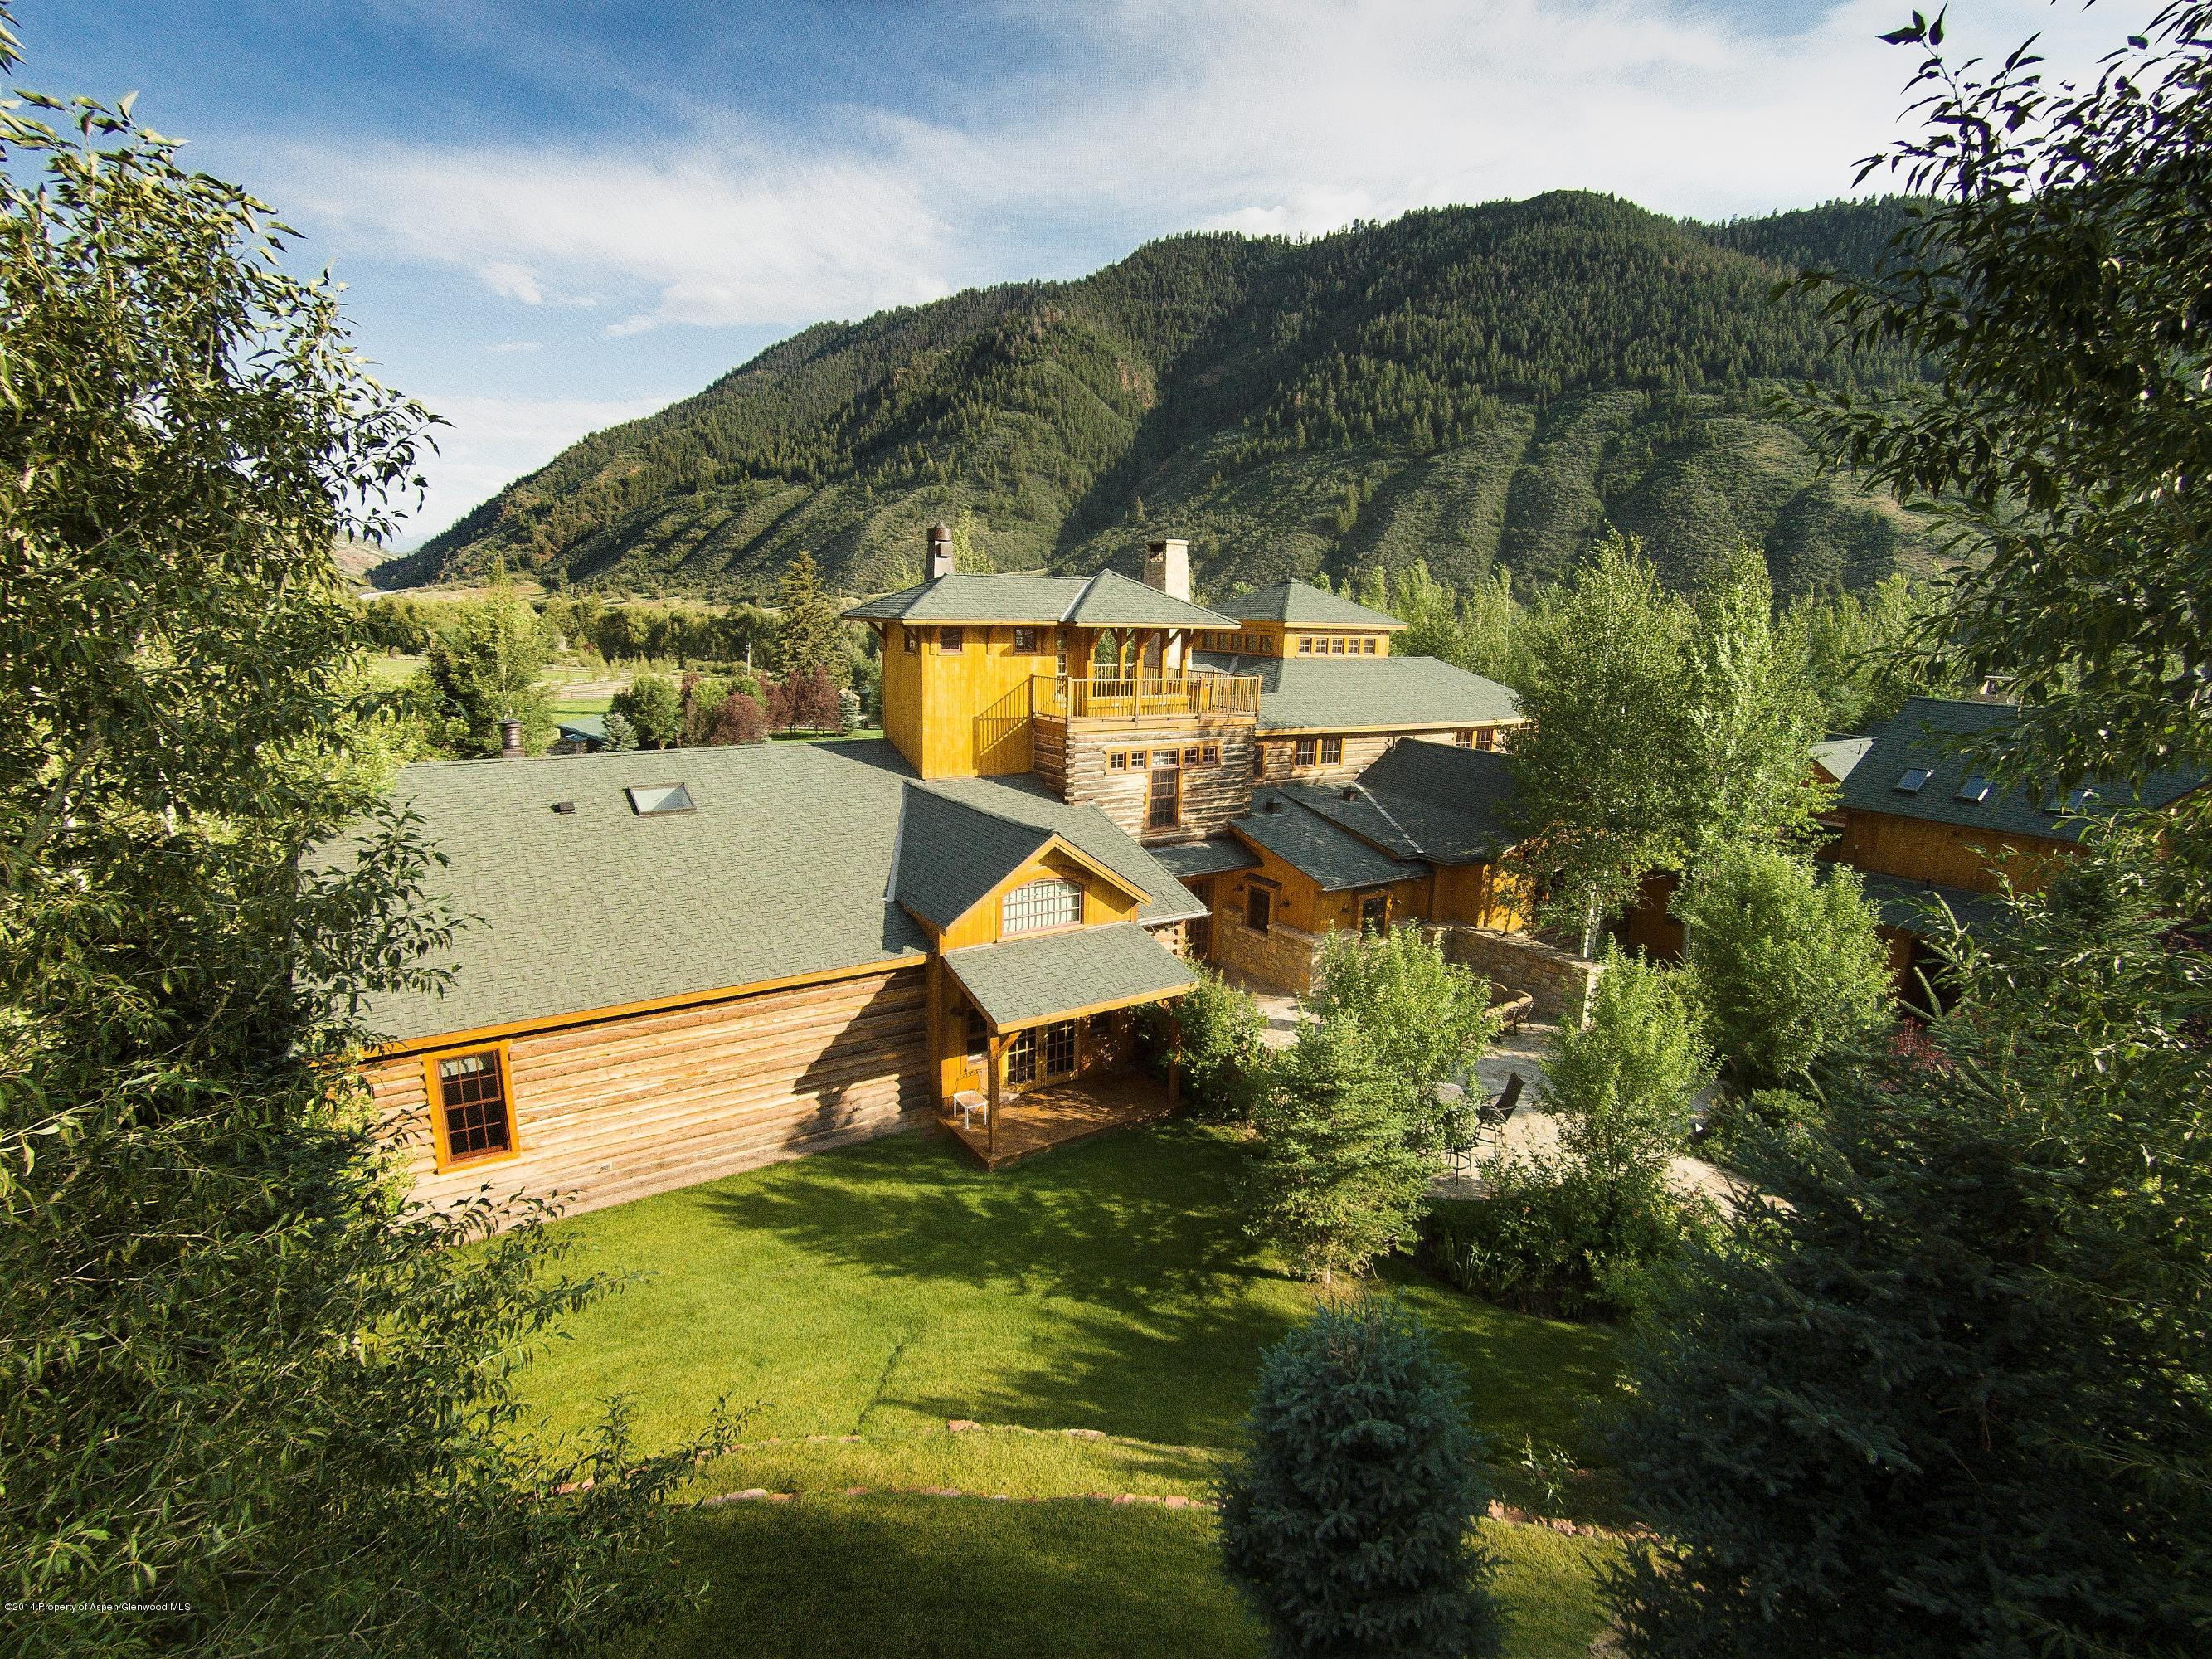 MLS# 135595 - 35 - 50 E River Ranch Road, Snowmass, CO 81654